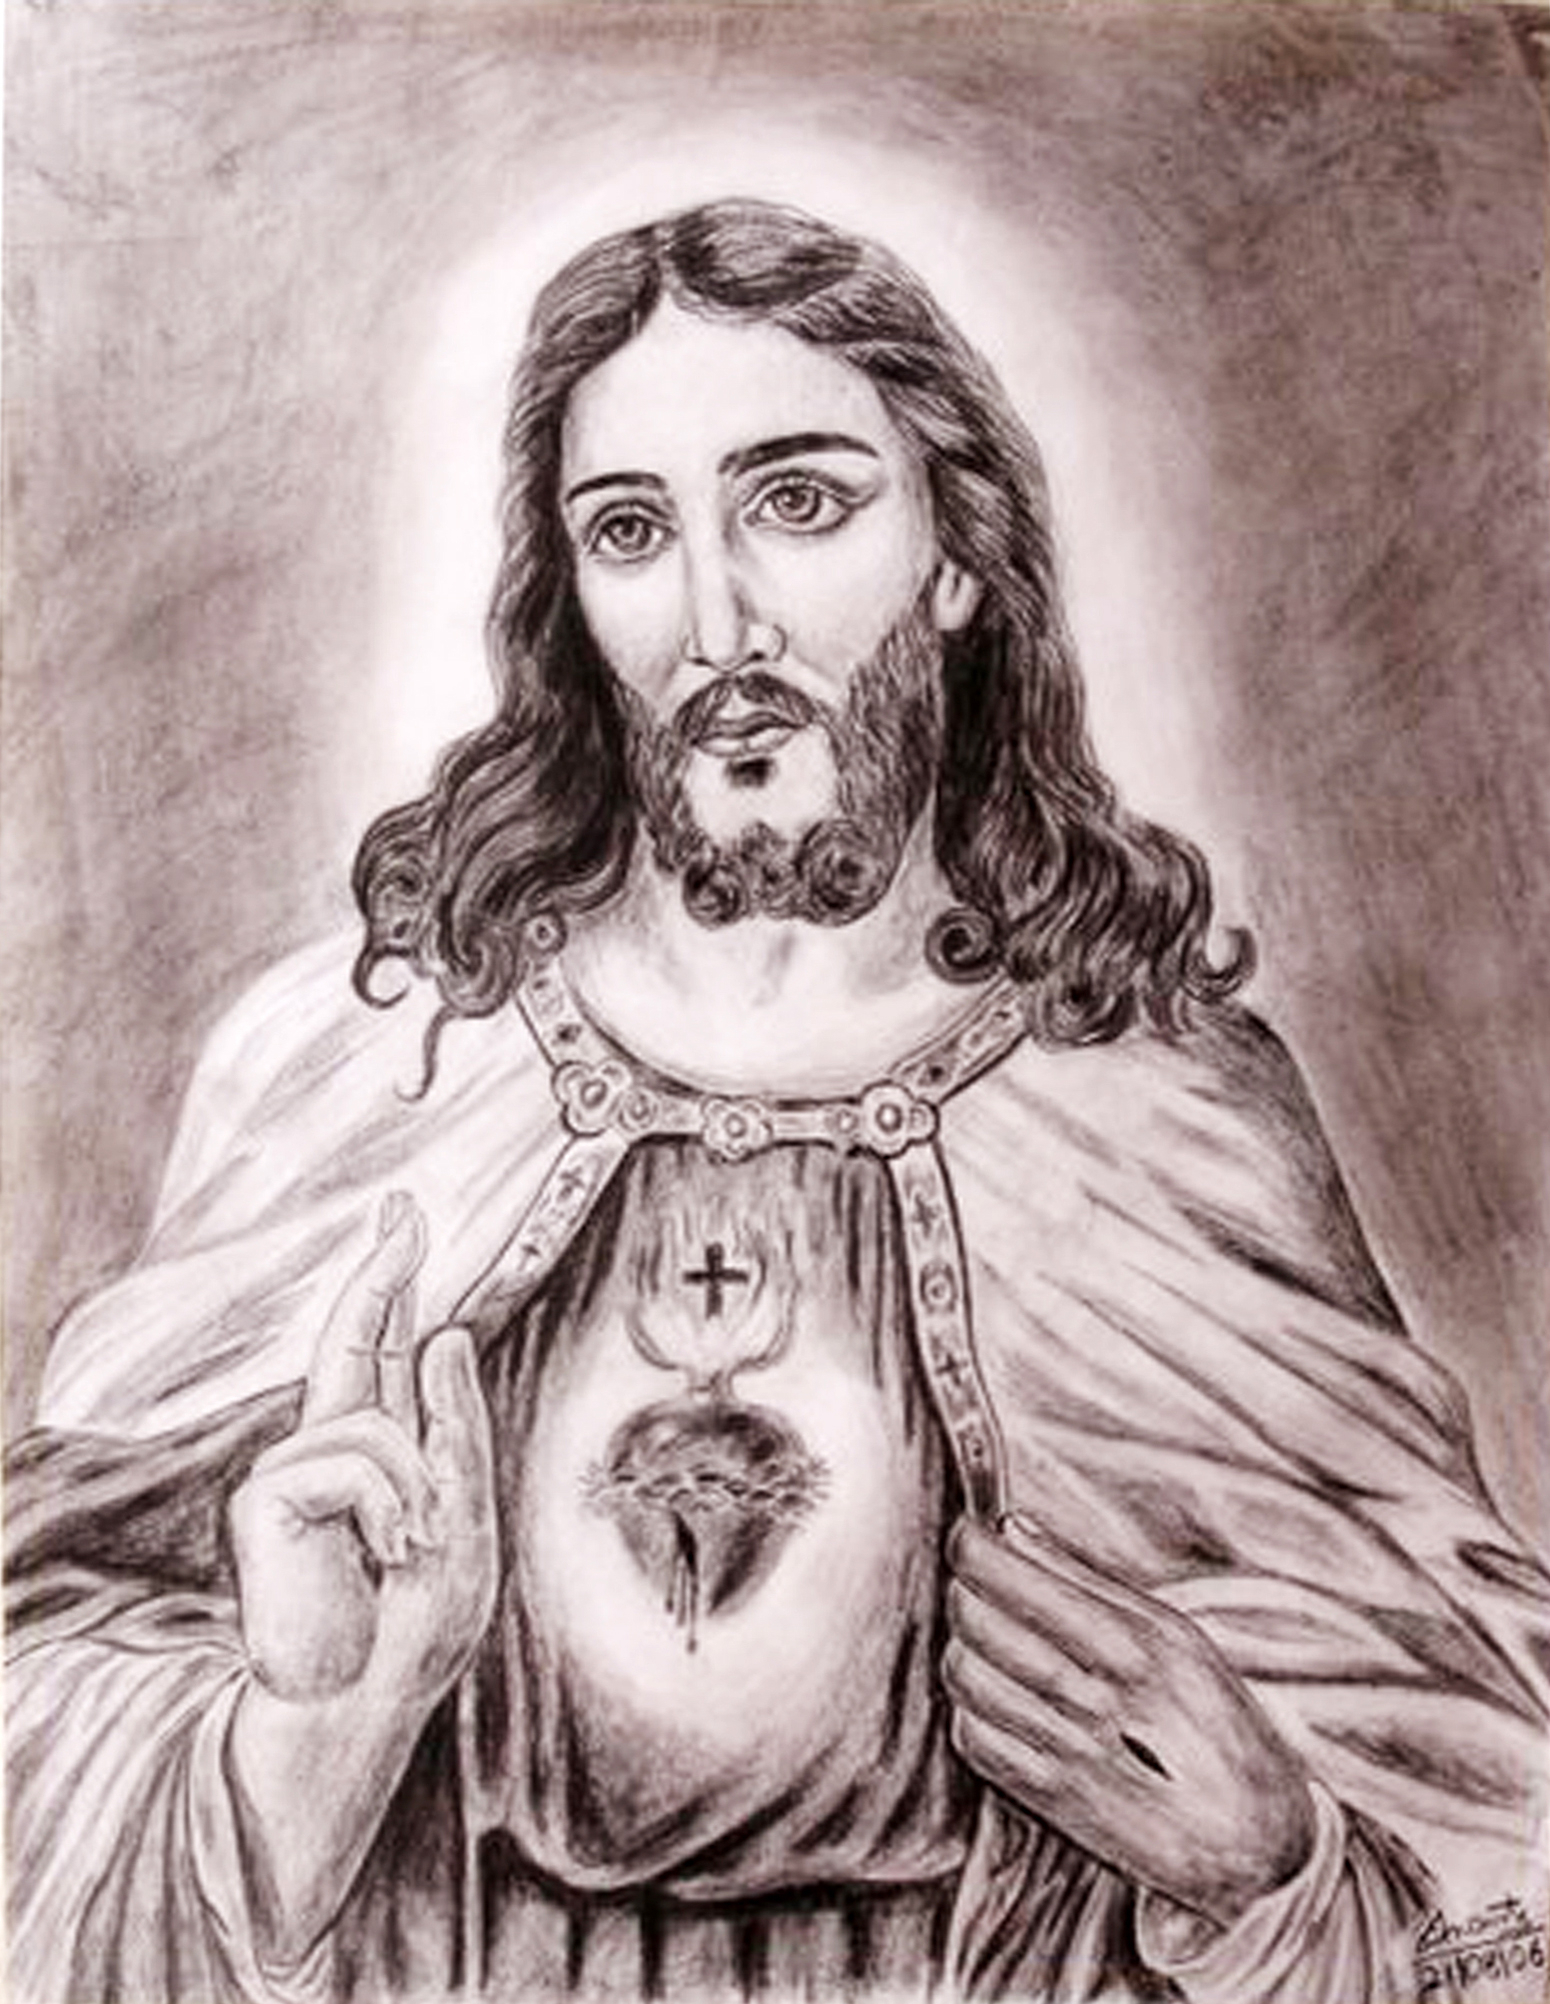 1550x2004 Pencil Drawing Of Jesus Christ Jesus Christ Pencil Sketch